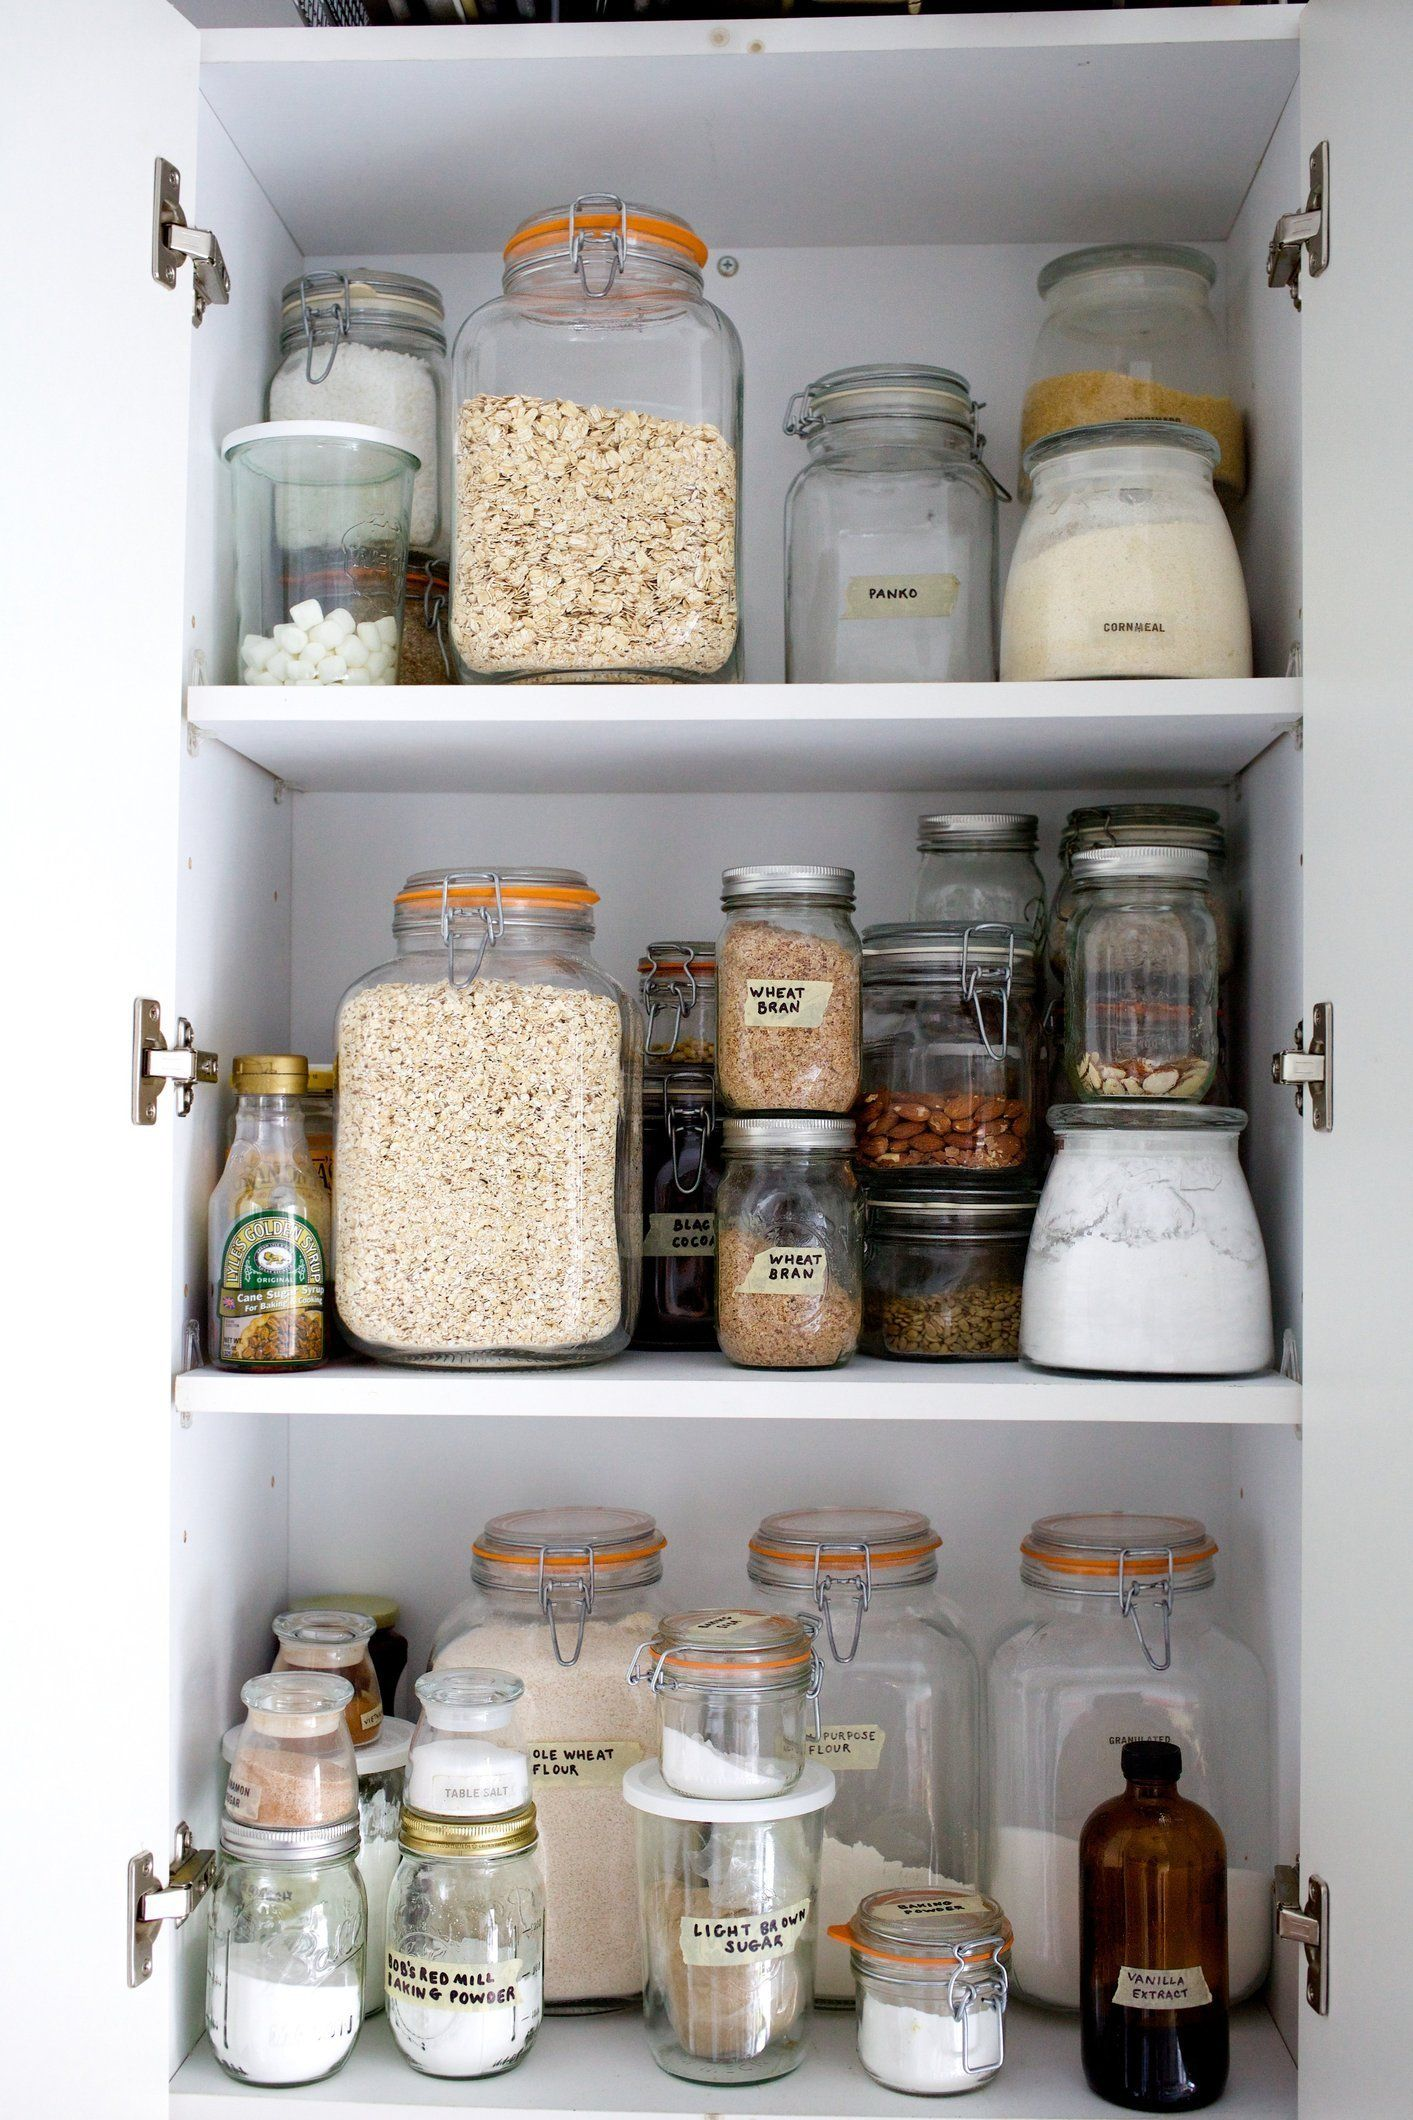 cabinets to incredible my your drawers how wonderful exquisite home and organize organizing kitchen wedding